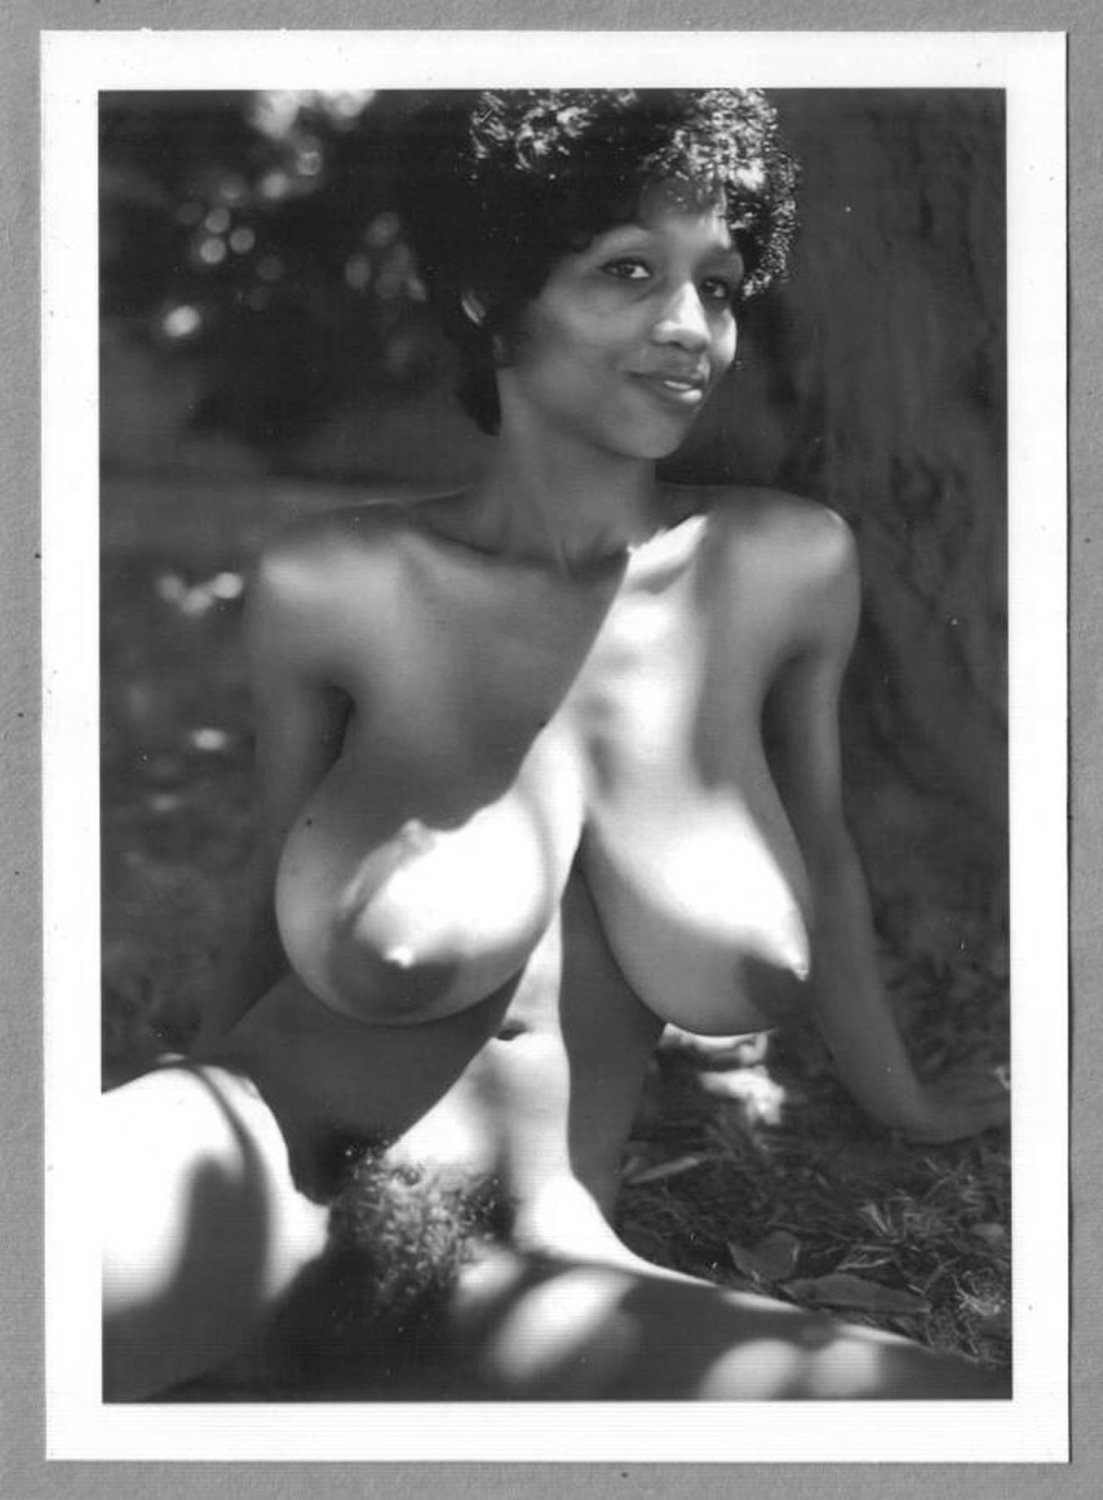 EBONY SYLVIA MCFARLAND TOPLESS NUDE HUGE BREASTS HAIRY PUSSY NEW REPRINT 5X7 SM-22